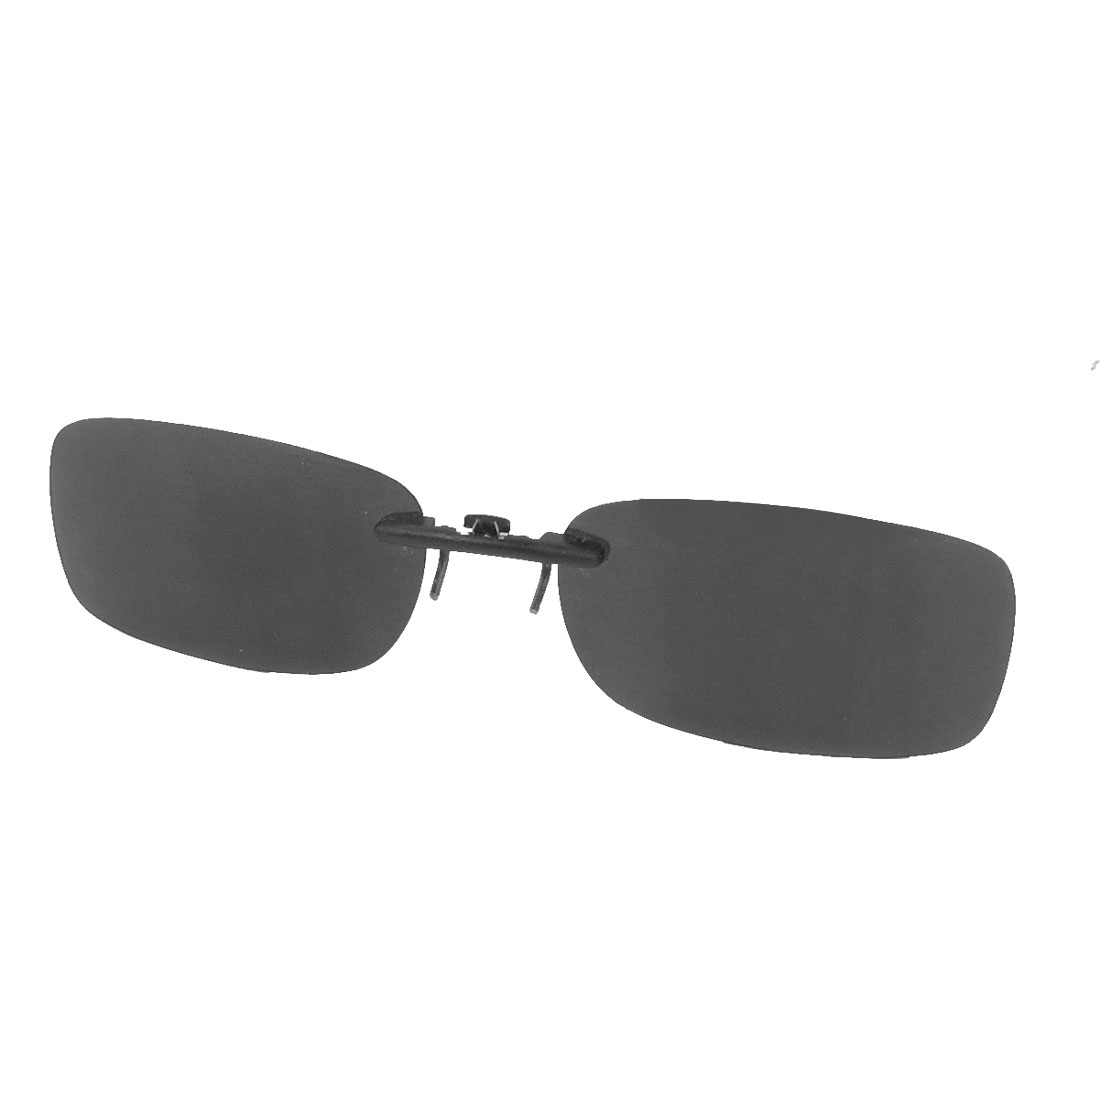 Unisex Clear Gray Polarized Lens Pull Type Spring Design Sunglasses